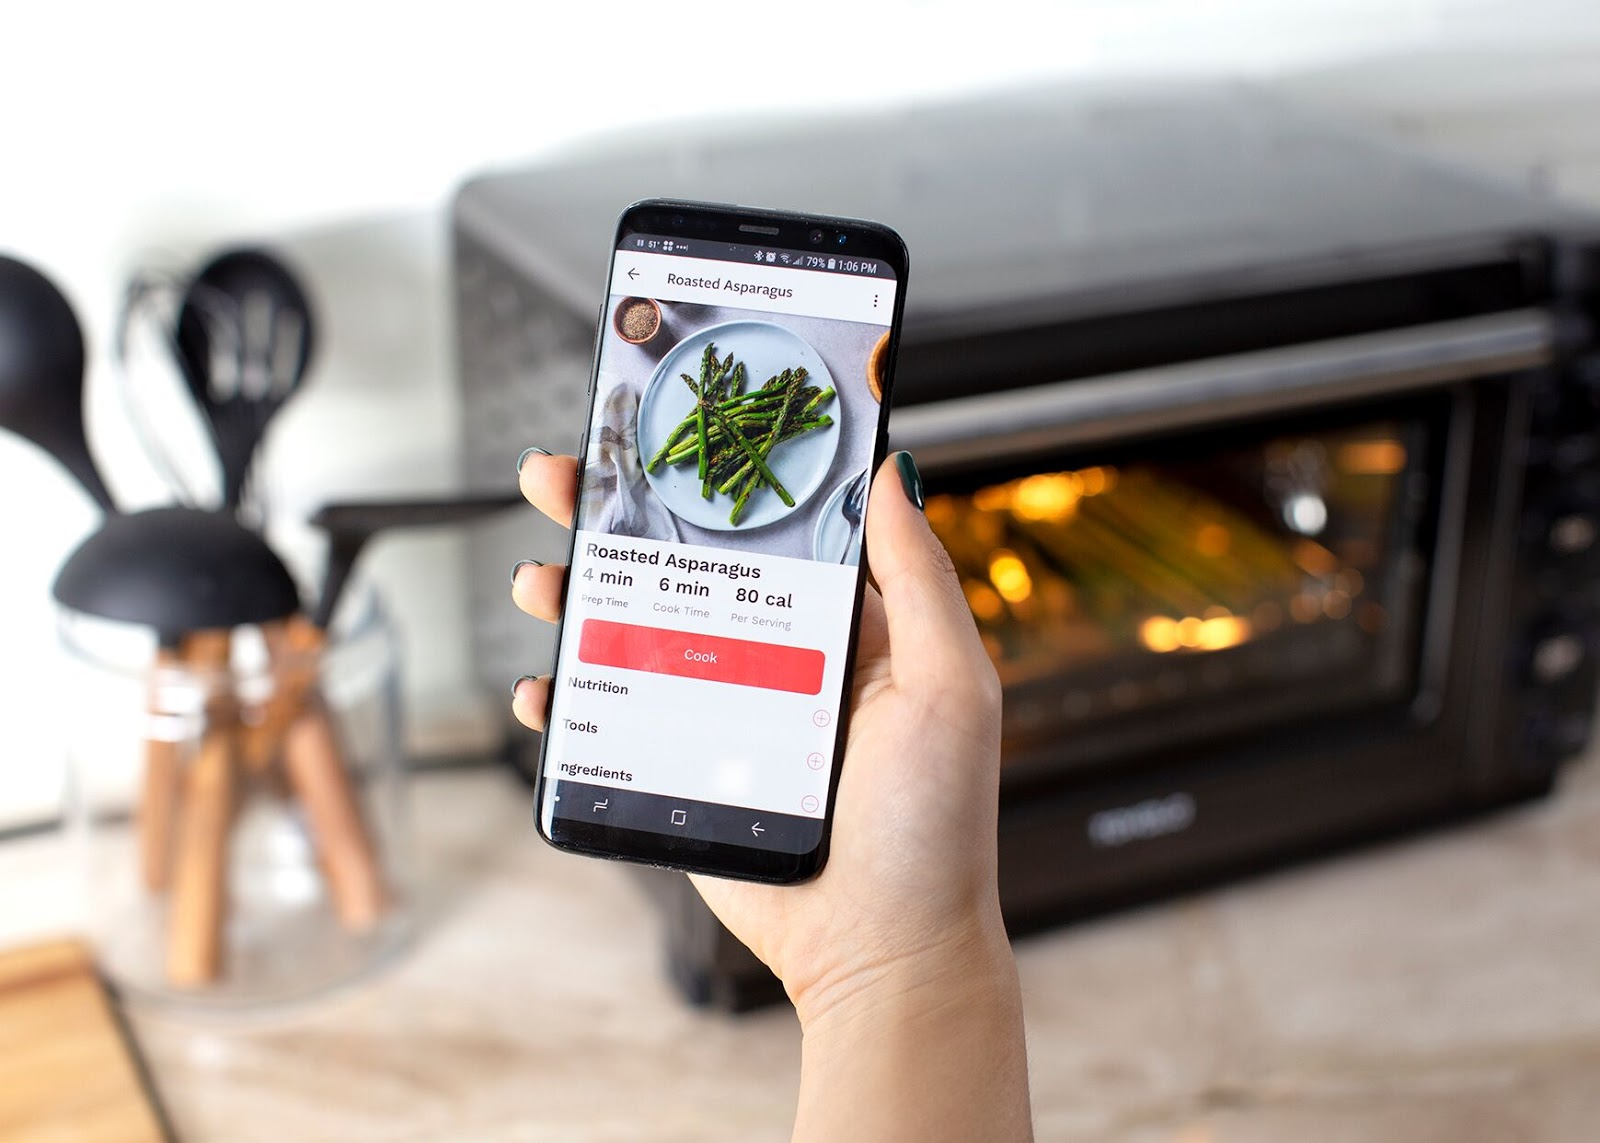 Countertop oven: The Tovala App connects with the Tovala Oven